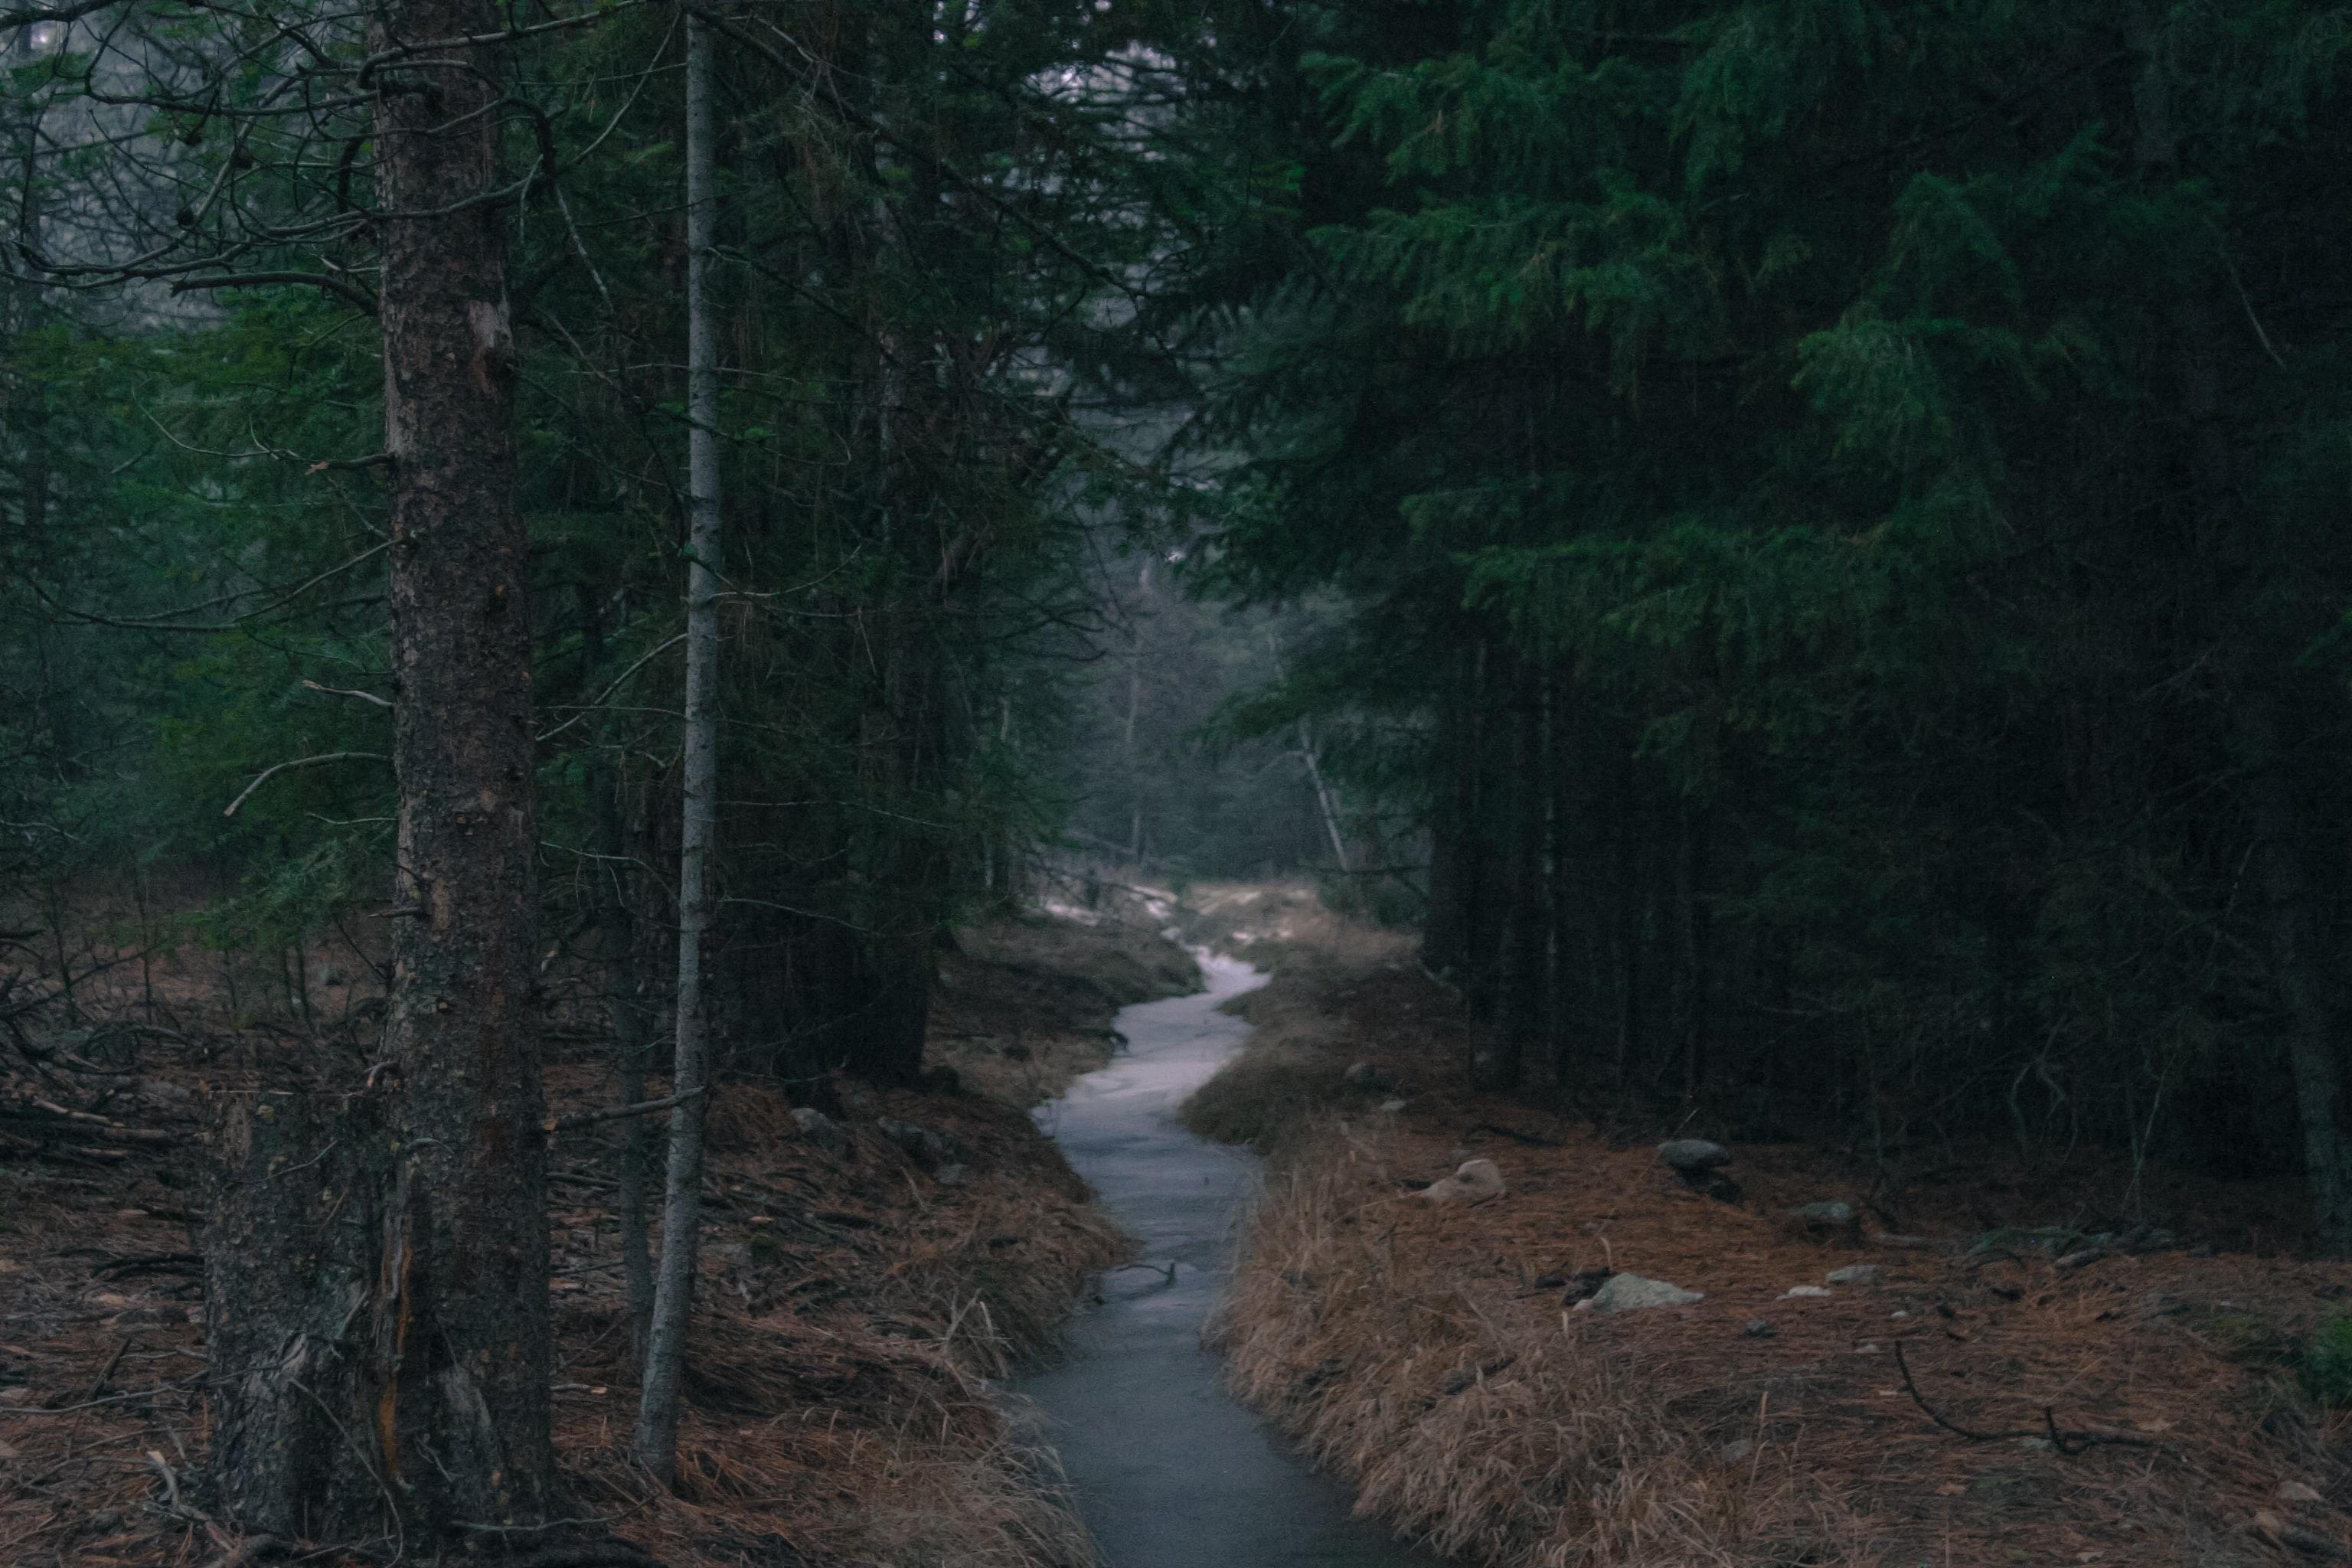 A Silent Stream  (A Short Poem)  by Mohib (@justletitgo) writing stories